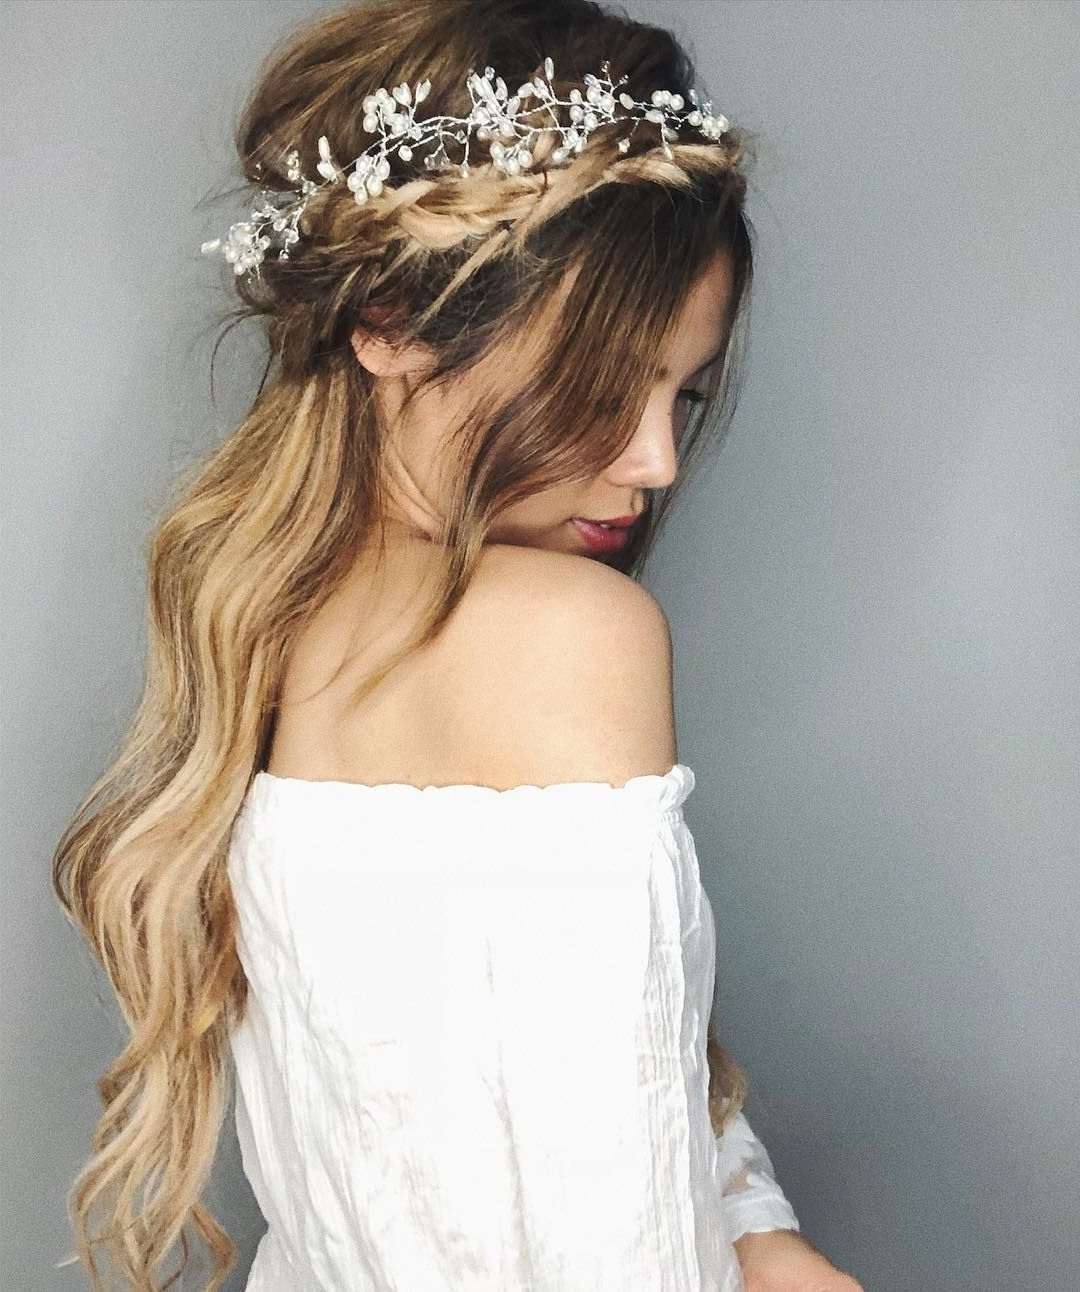 87 Fabulous Wedding Hairstyles For Every Wedding Dress Neckline Intended For Most Current Relaxed Wedding Hairstyles (View 3 of 15)